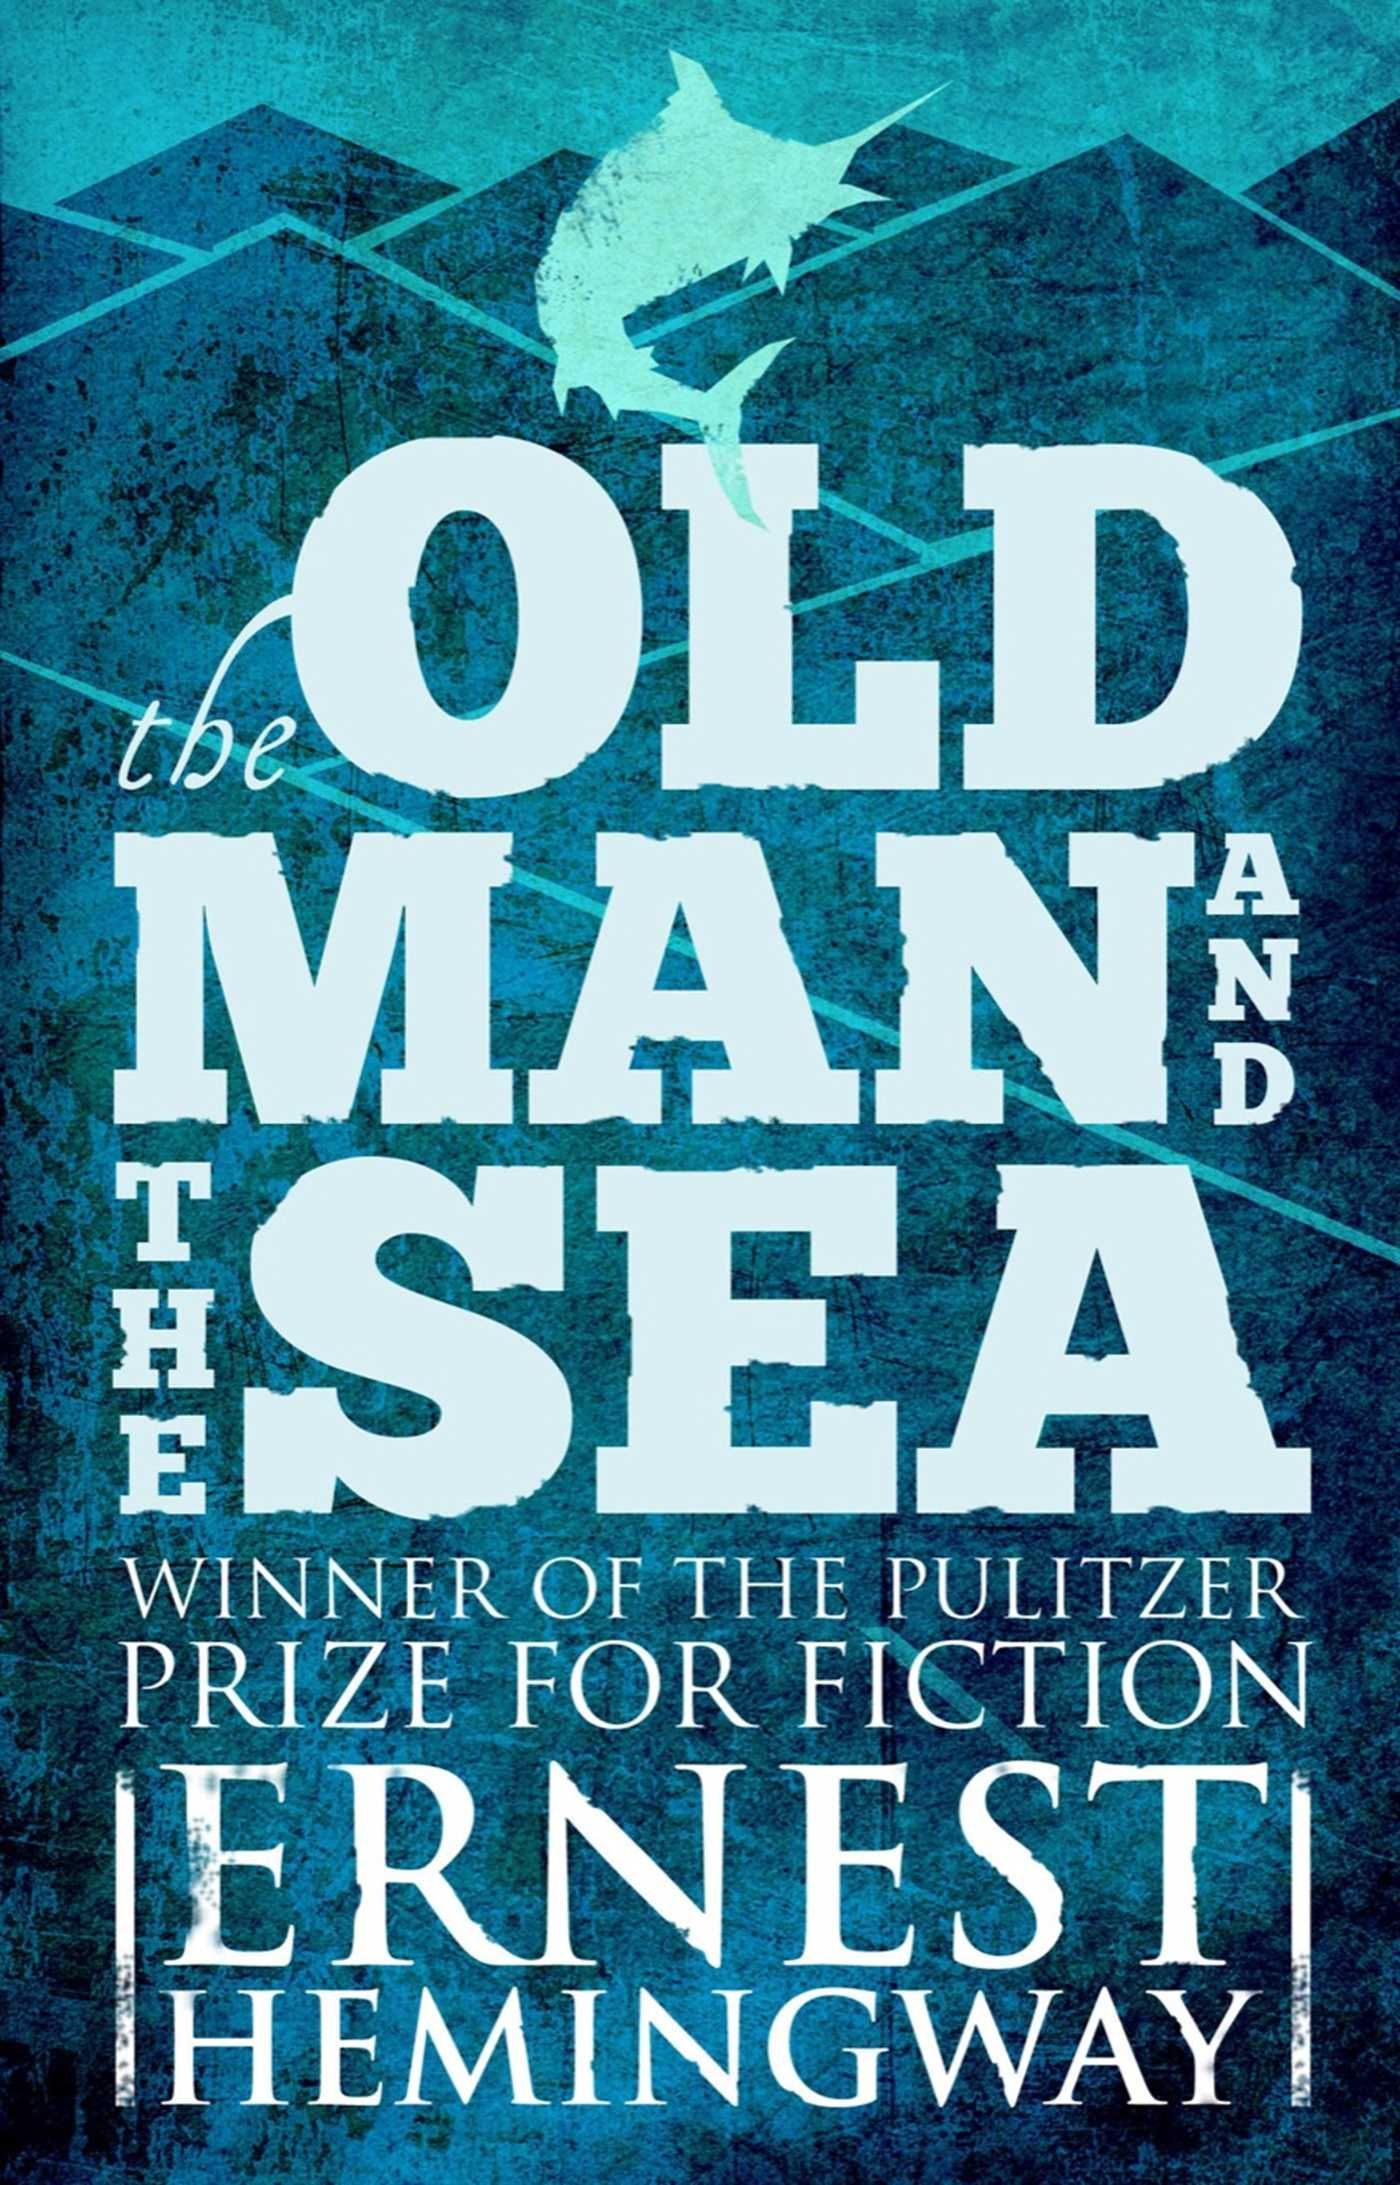 the meaning of ernest hemingways the old man and the sea Old man & the sea by ernest hemingway available in trade paperback on powellscom, also read synopsis and reviews told in language of great simplicity and power, this story of courage and personal triumph remains.